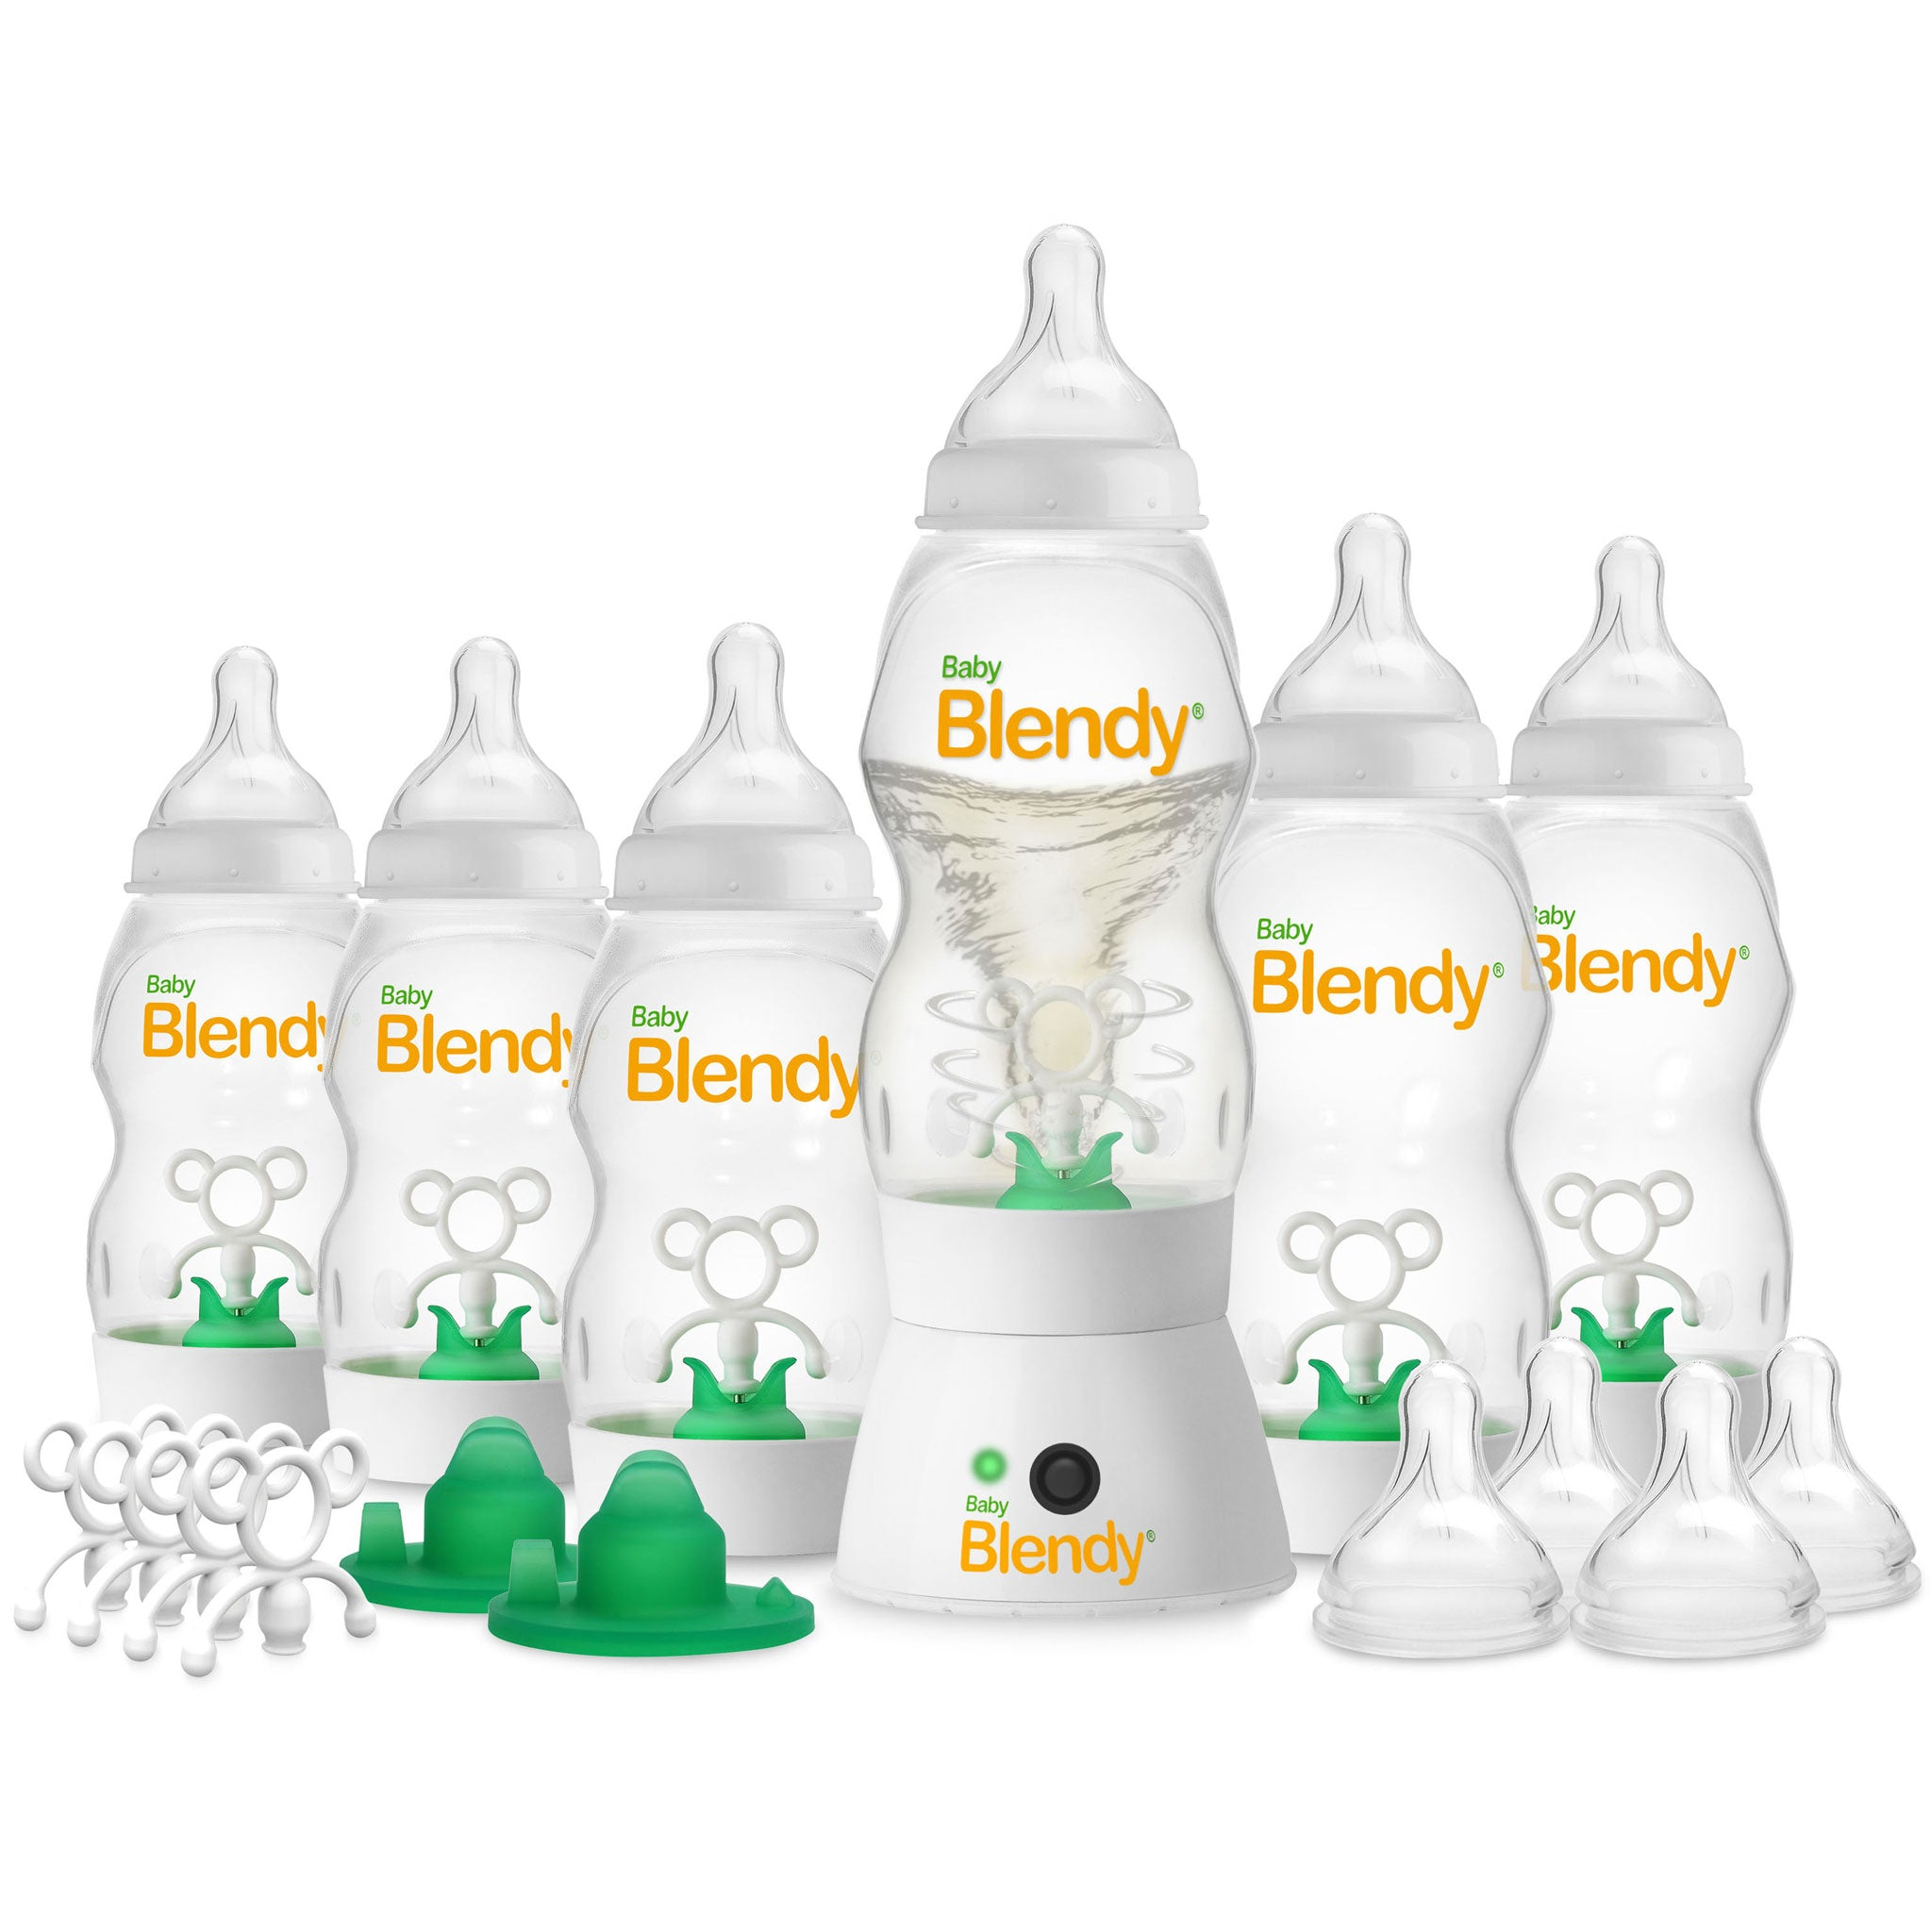 Anti colic baby bottles (6)